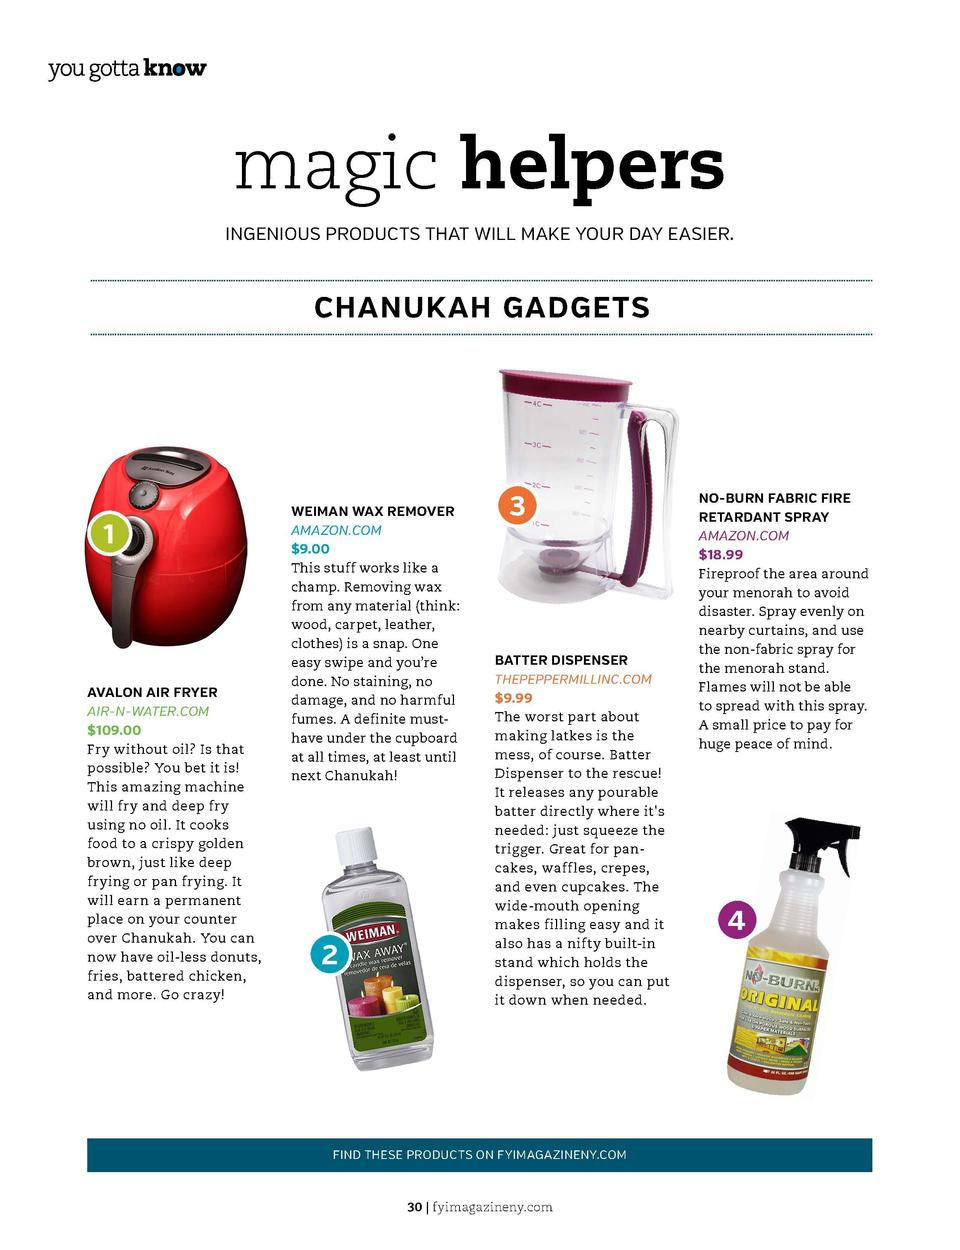 magic helpers INGENIOUS PRODUCTS THAT WILL MAKE YOUR DAY EASIER.  TIDBITS OF INFORMATION THAT   S GOOD TO KNOW WHEN IN A C...